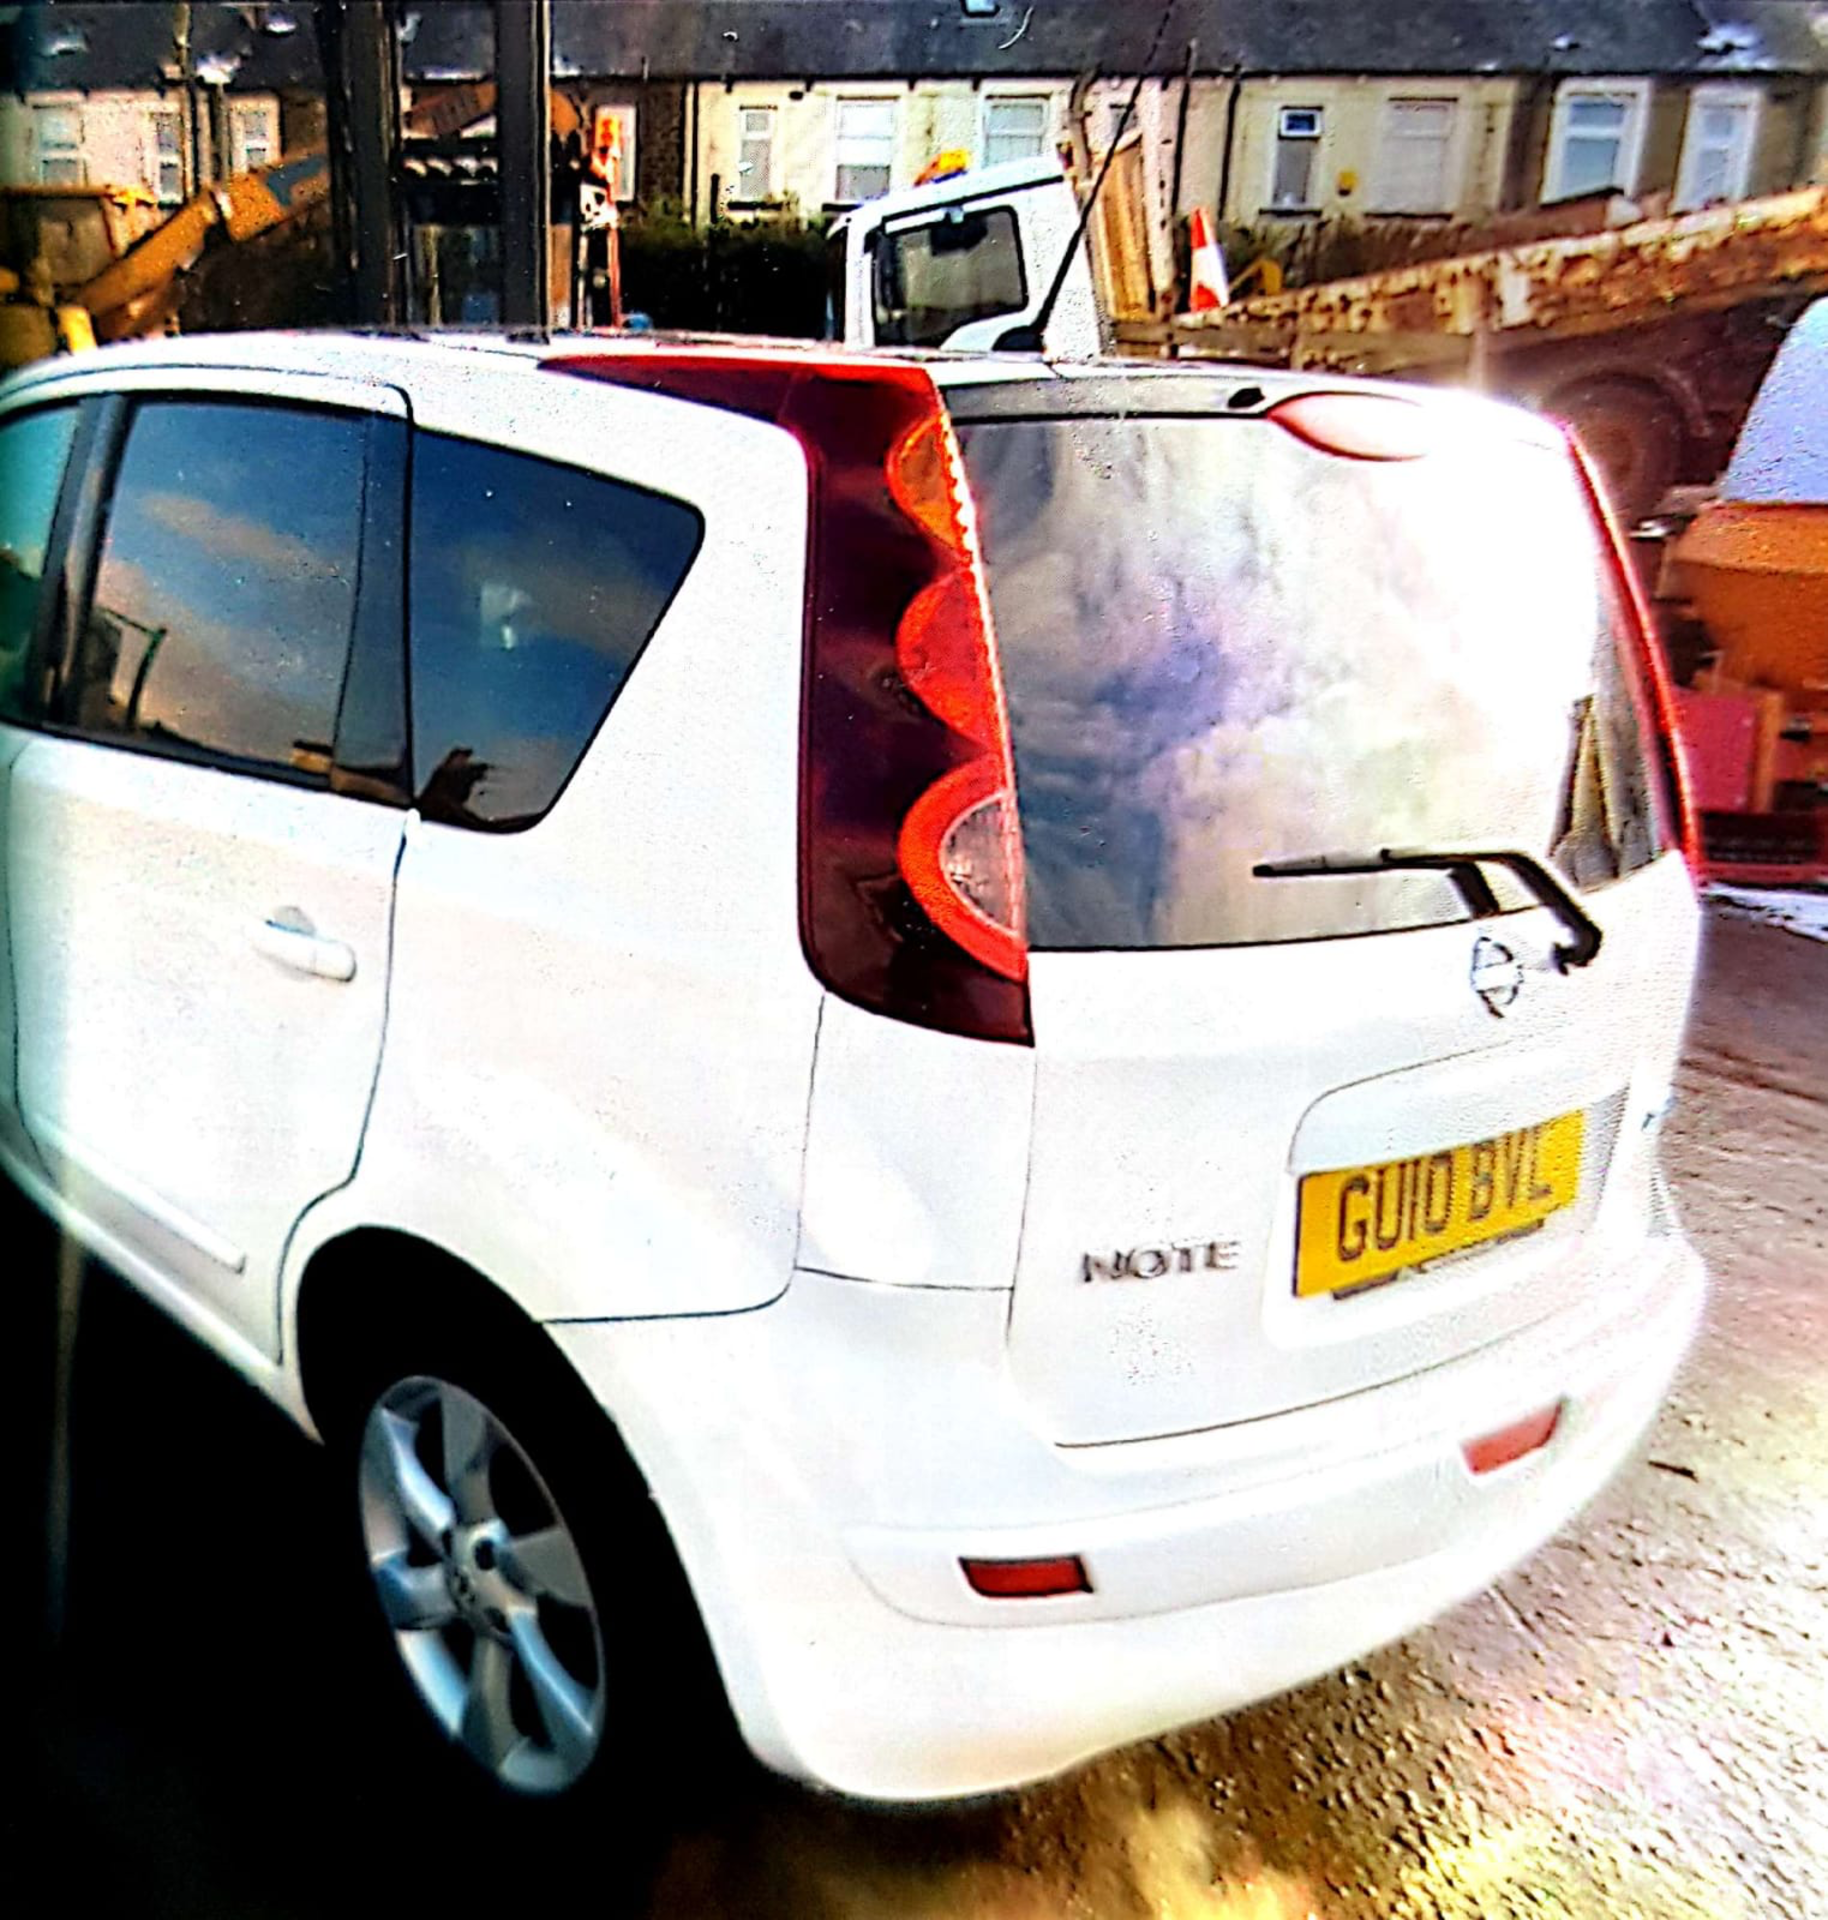 WHITE NISSAN NOTE 2010 GU10 BVL 61000 MILES COLLECTION MANCHESTER - Image 4 of 4